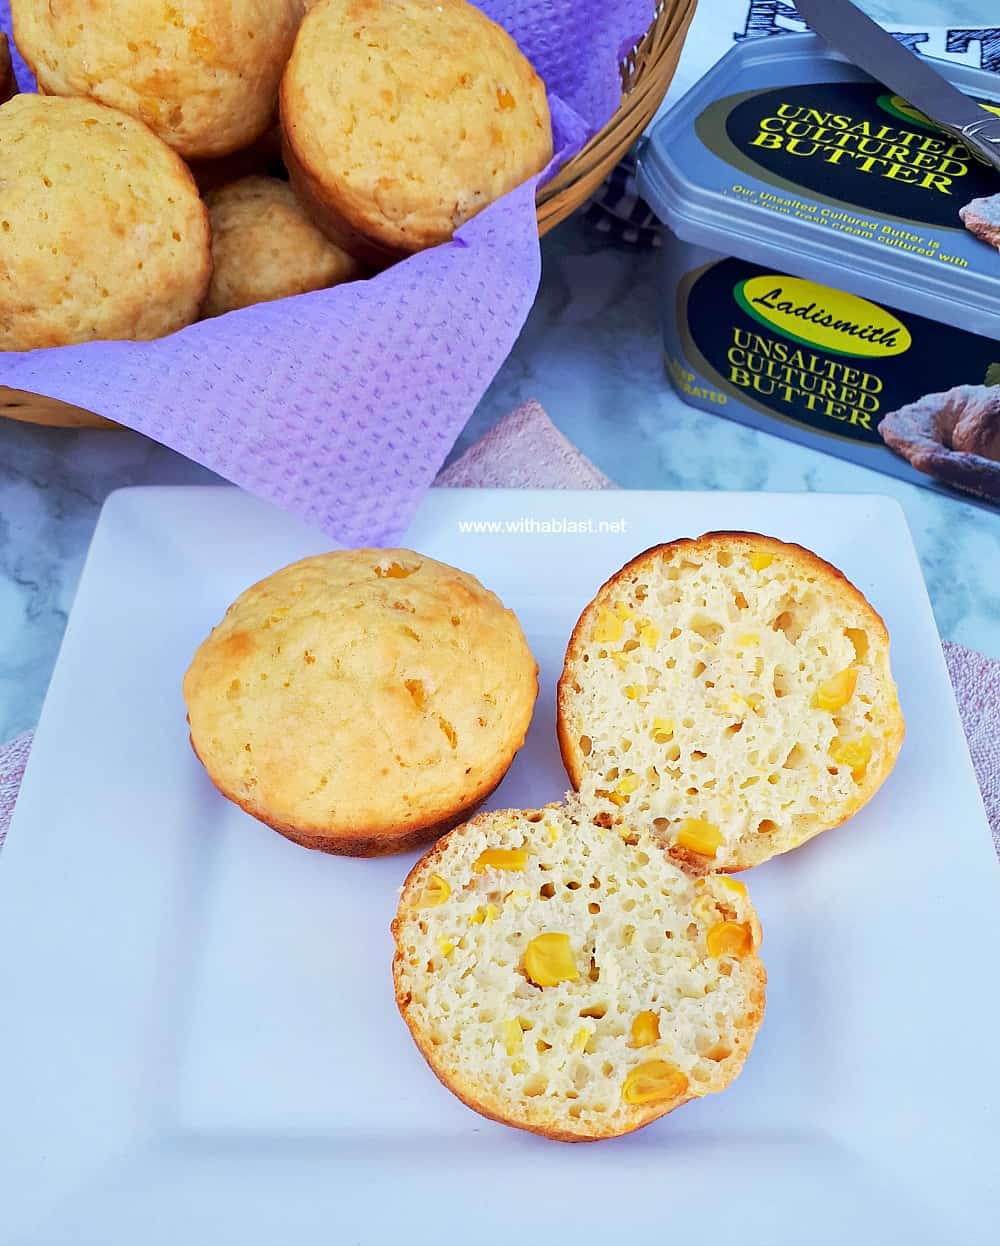 Sweetcorn Muffins are soft, fluffy and quick enough to make (all standard pantry ingredients) as an addition to breakfast or serve as a snack